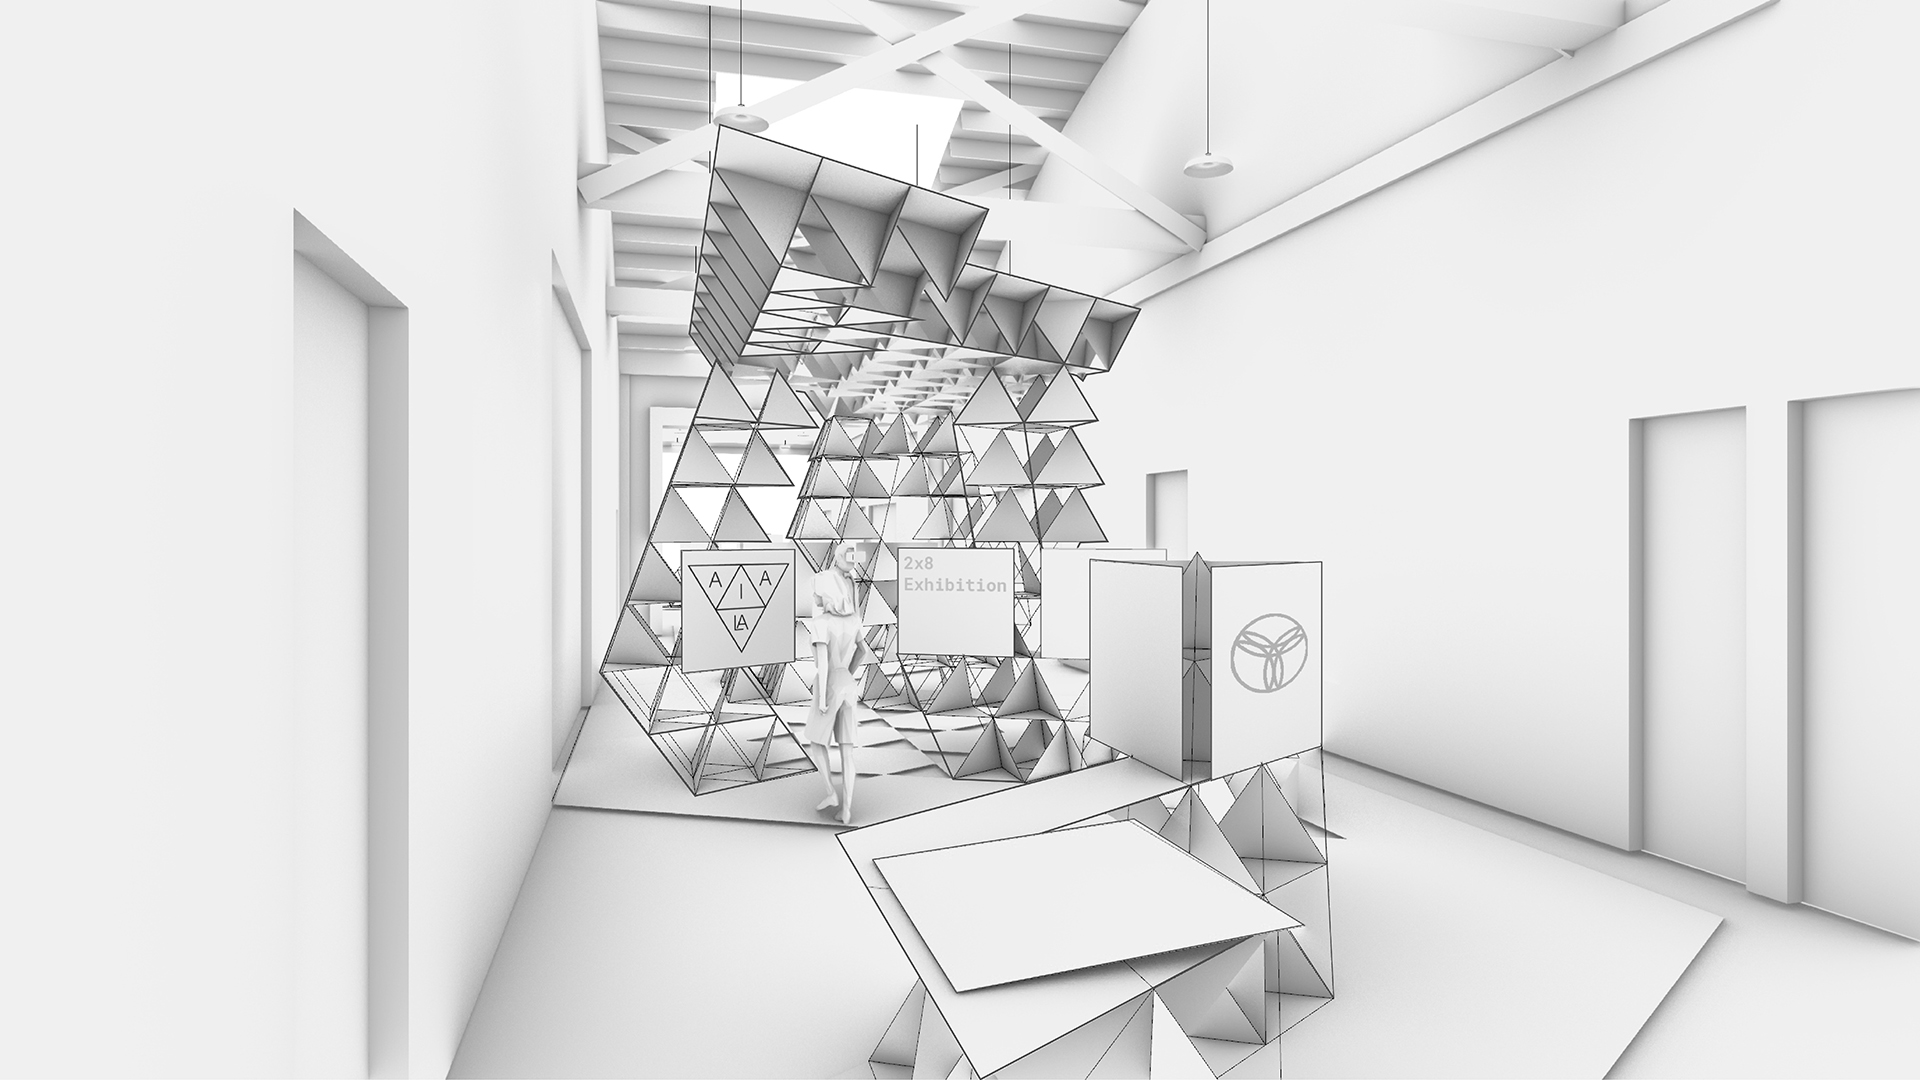 AIA_LA-2×8 Exhibition Design